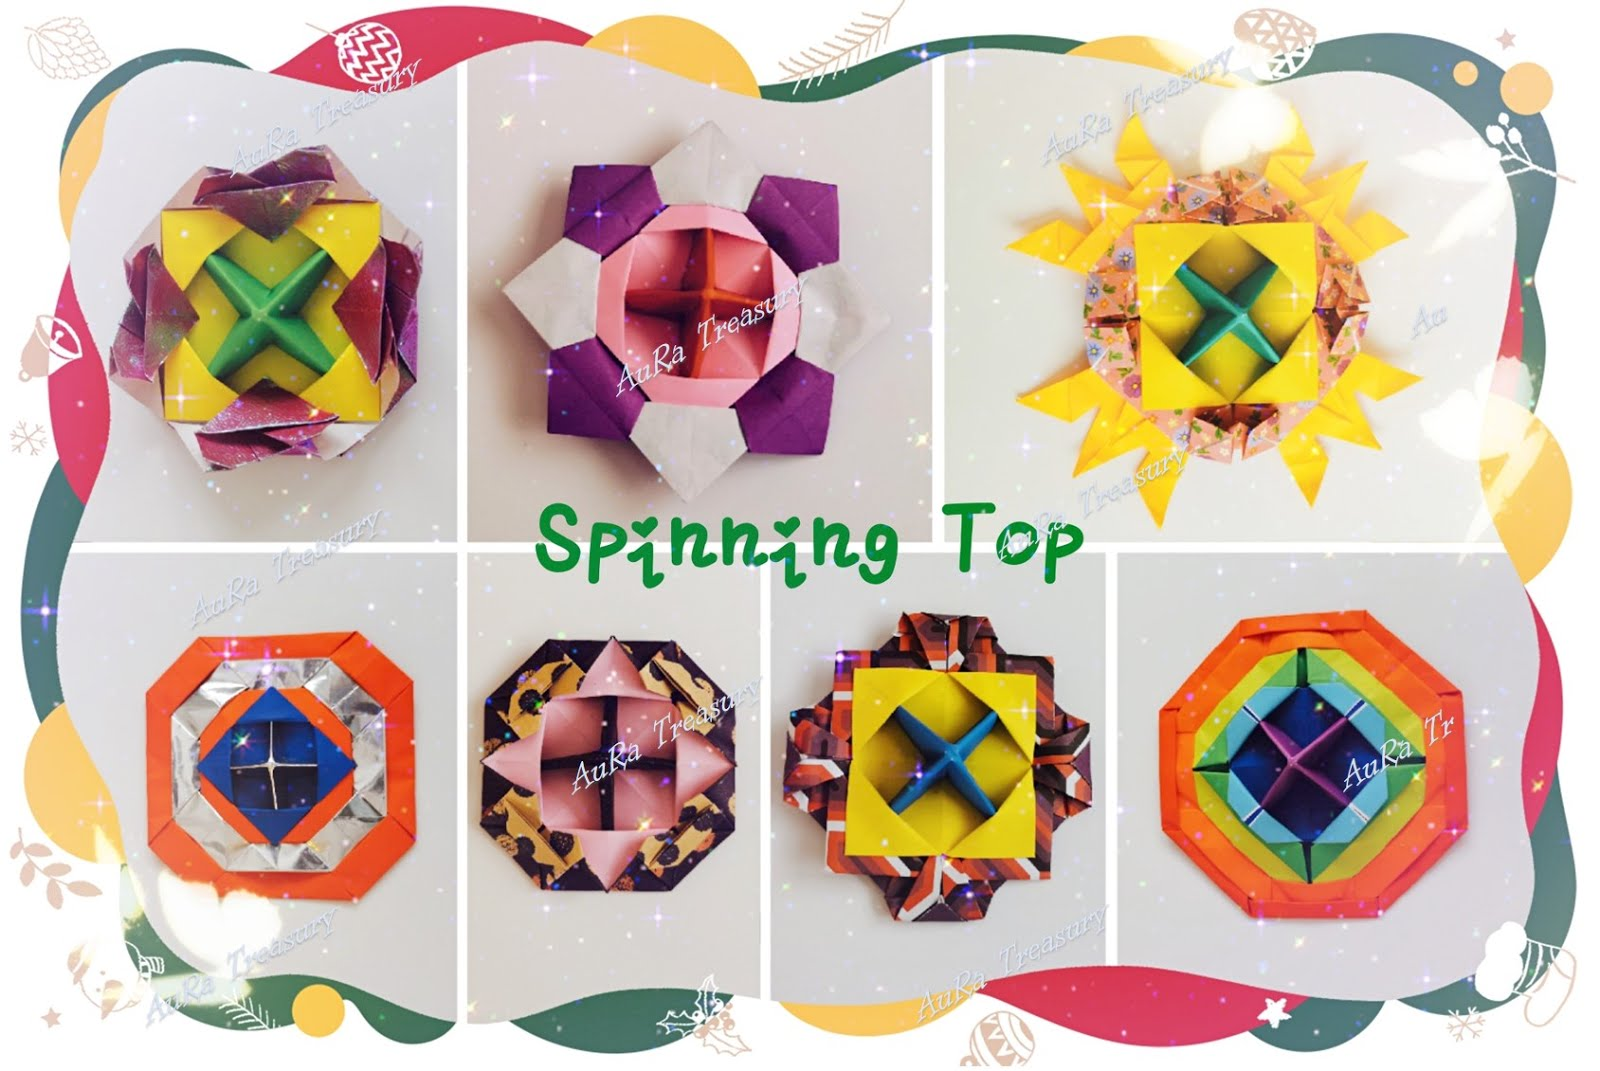 Tutorial: Origami Spinning Top